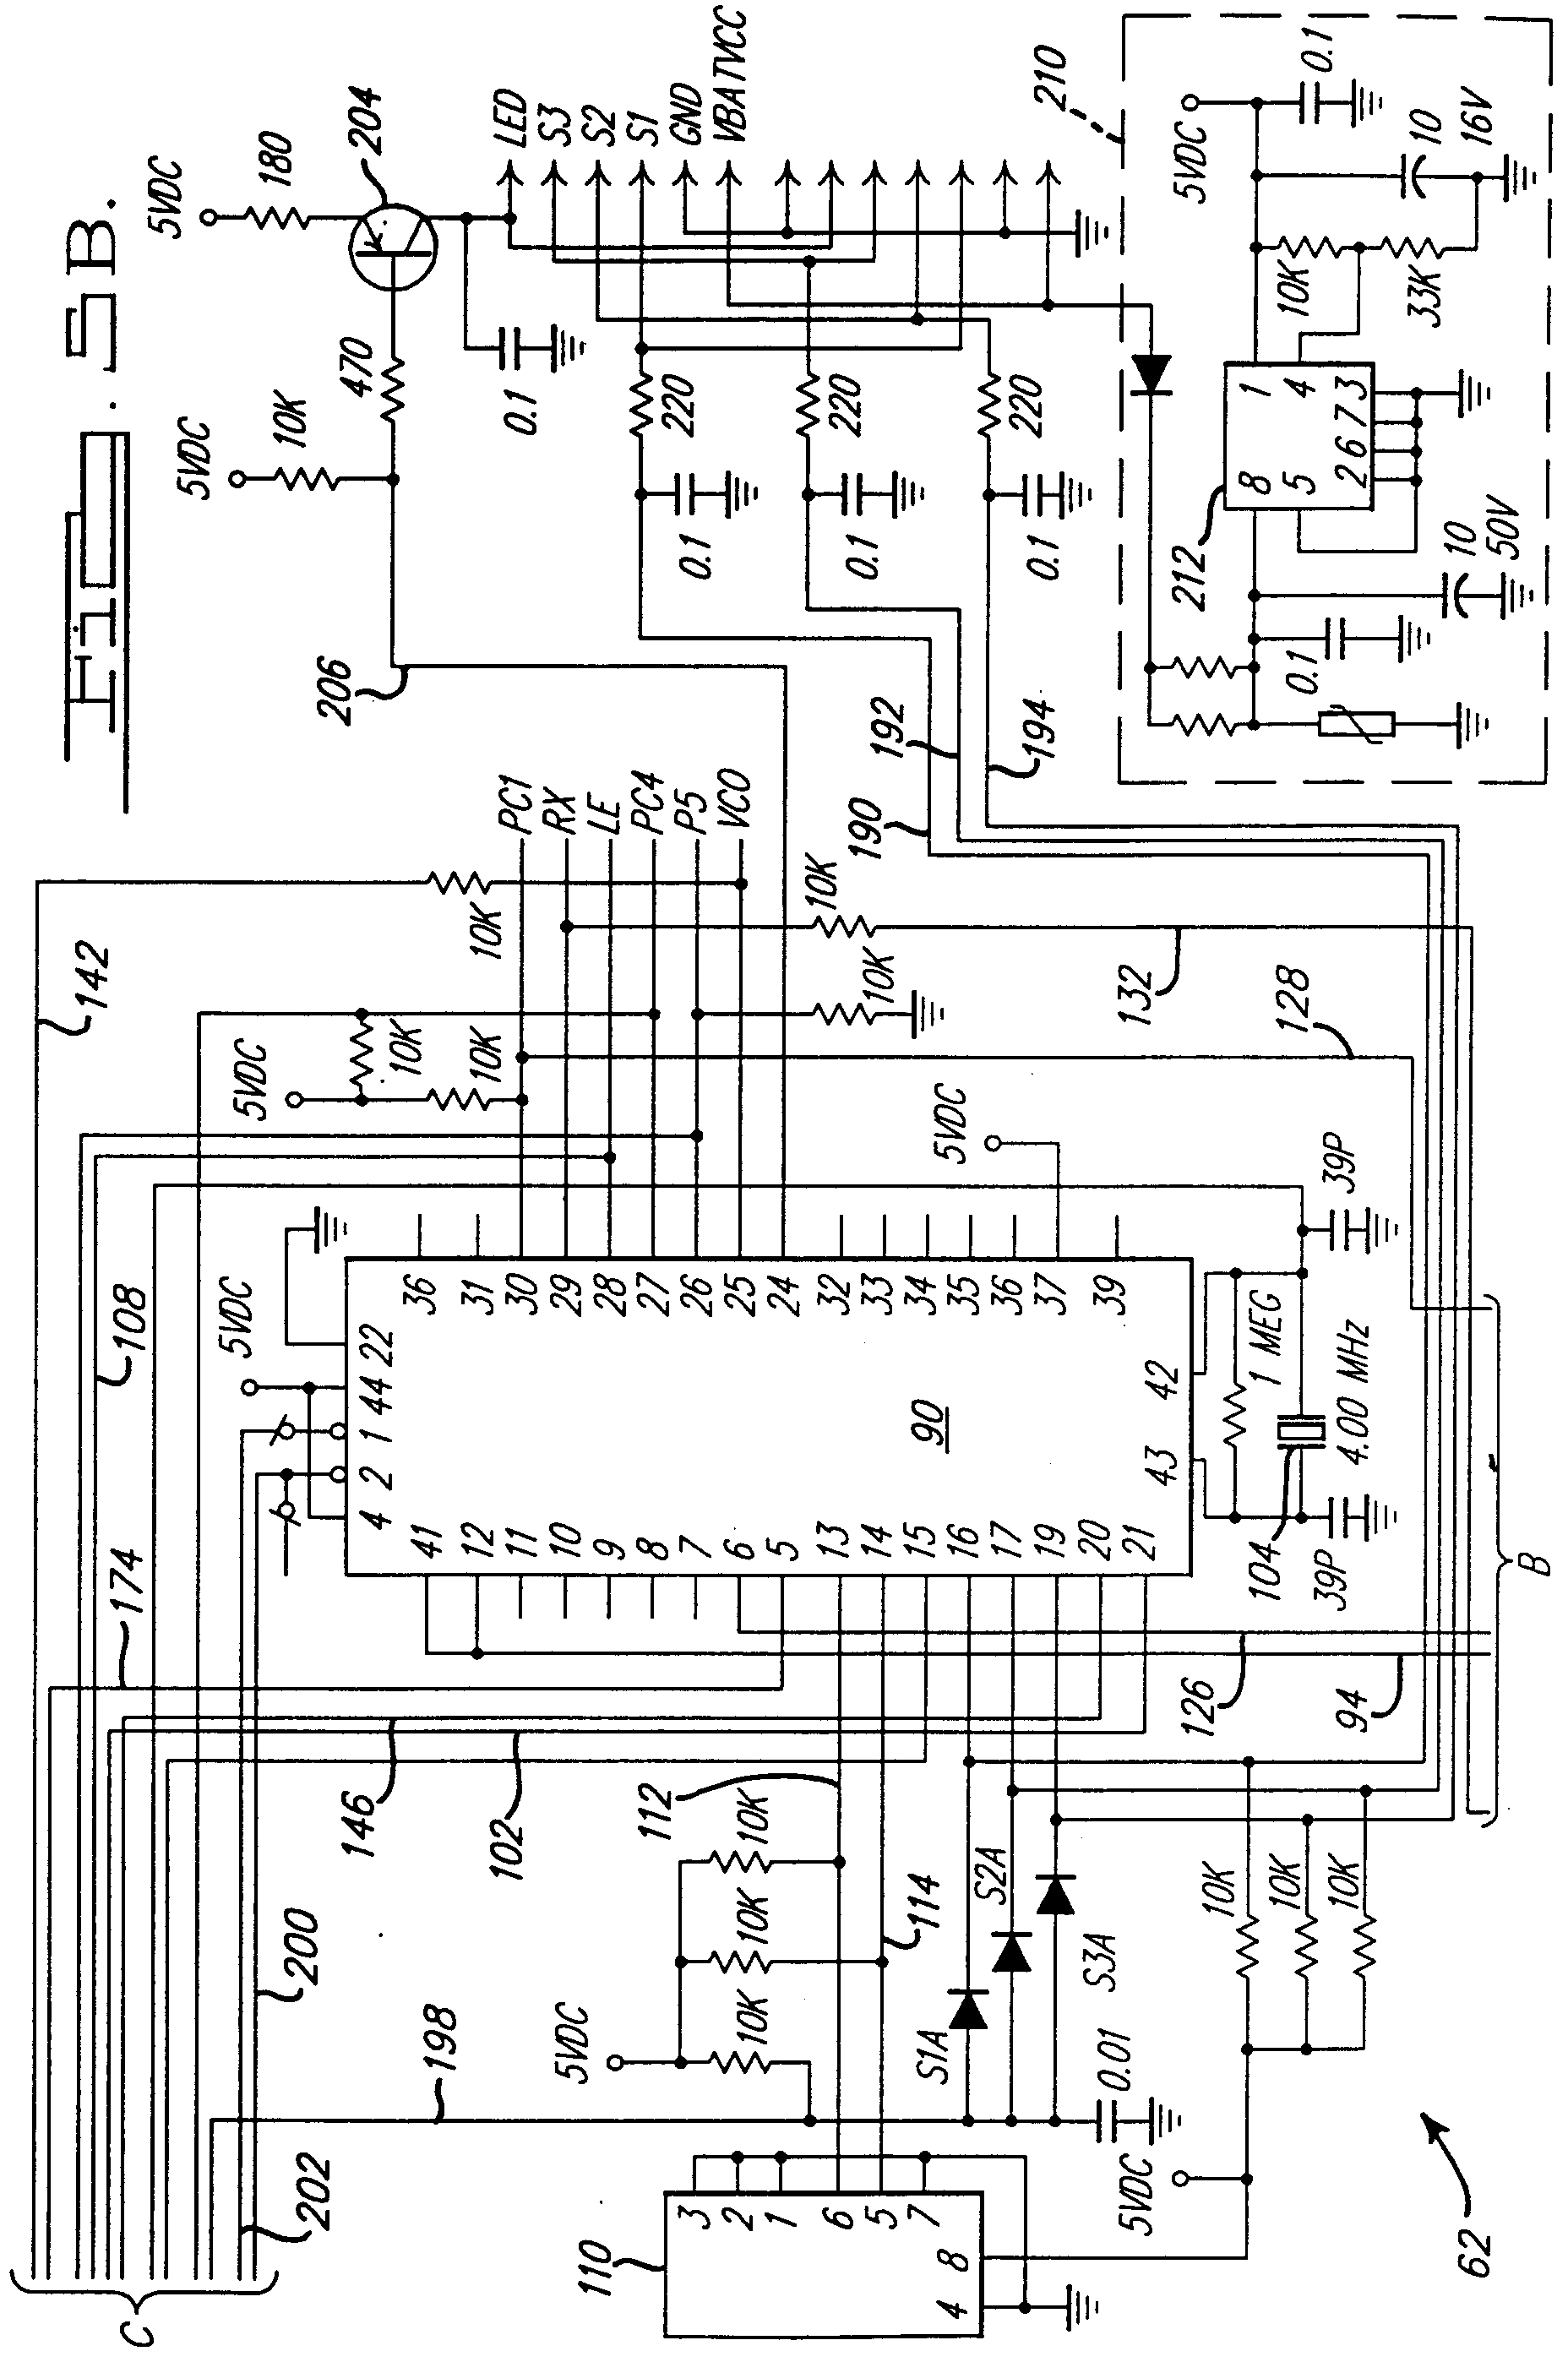 00350001 patent ep0875646a1 universal garage door opener google patents genie garage door opener wiring diagram at honlapkeszites.co